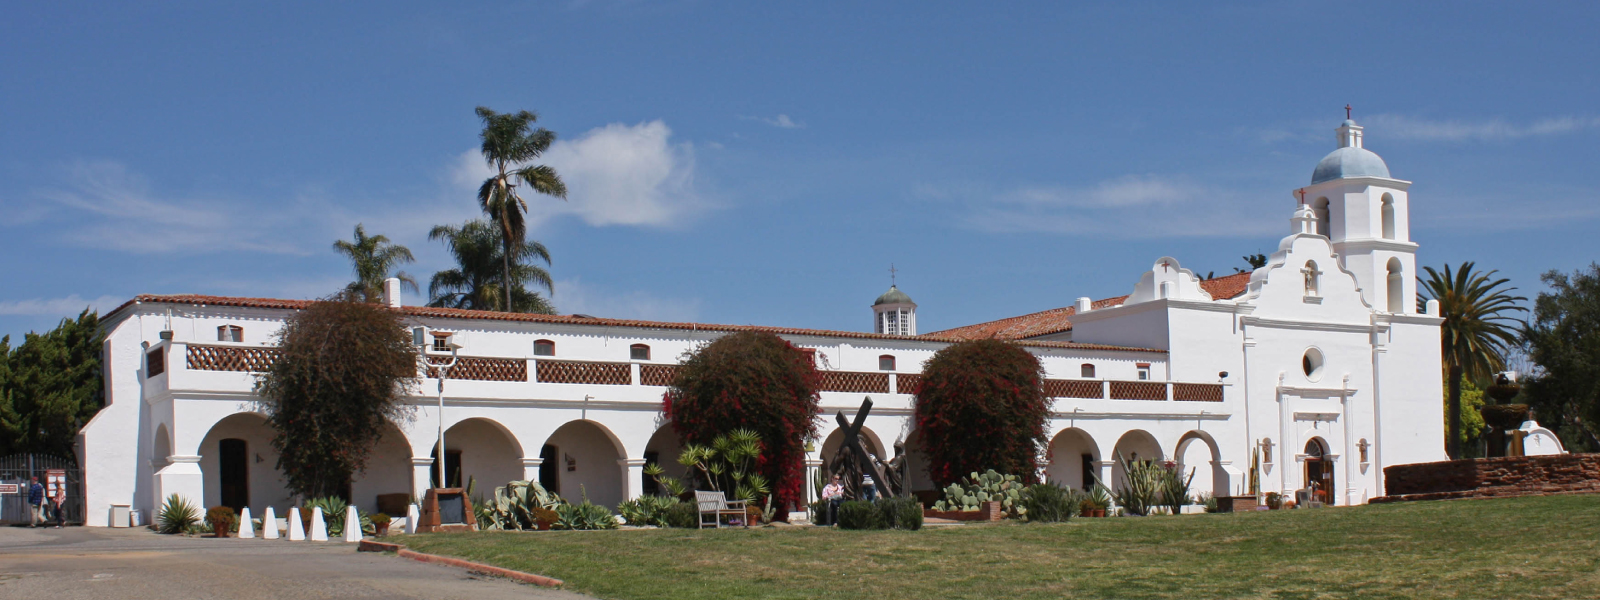 san luis rey buddhist personals San diego county, california churches: a listing of all the churches in san diego county, ca with names beginning with n includes maps, driving directions, and a local area search function.